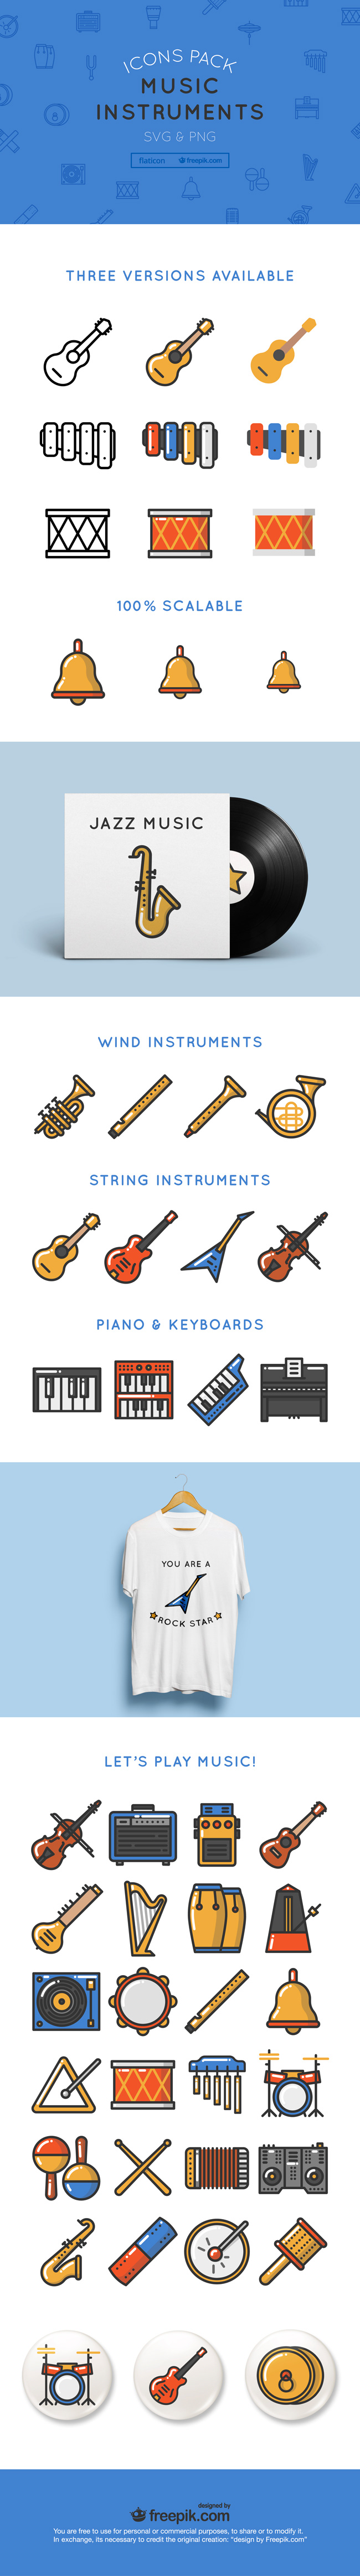 music-instrument-icons